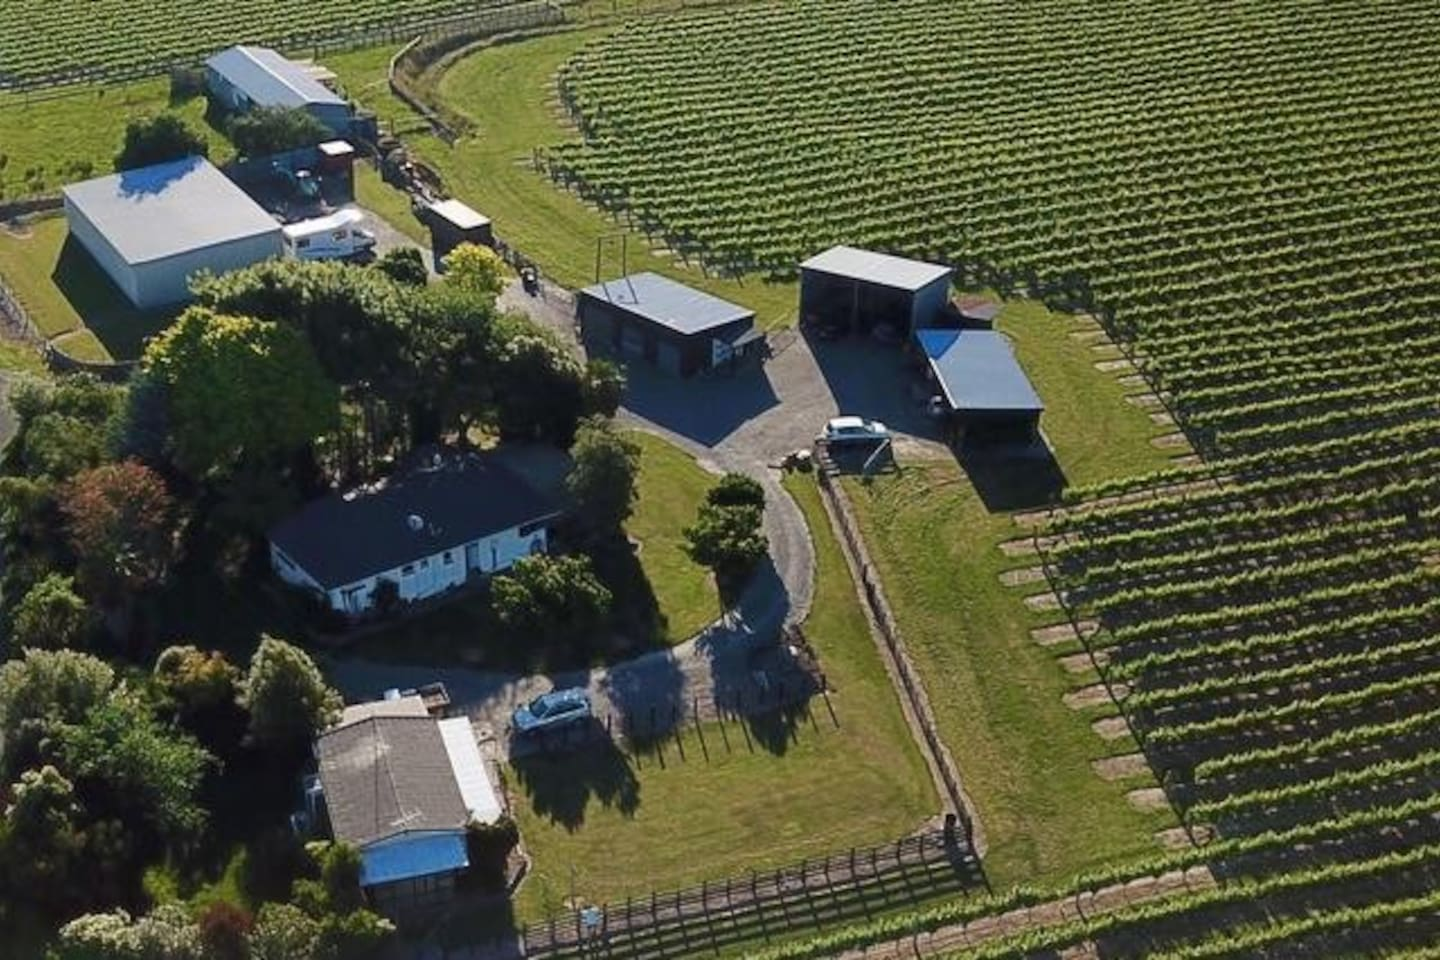 The garden and vineyard